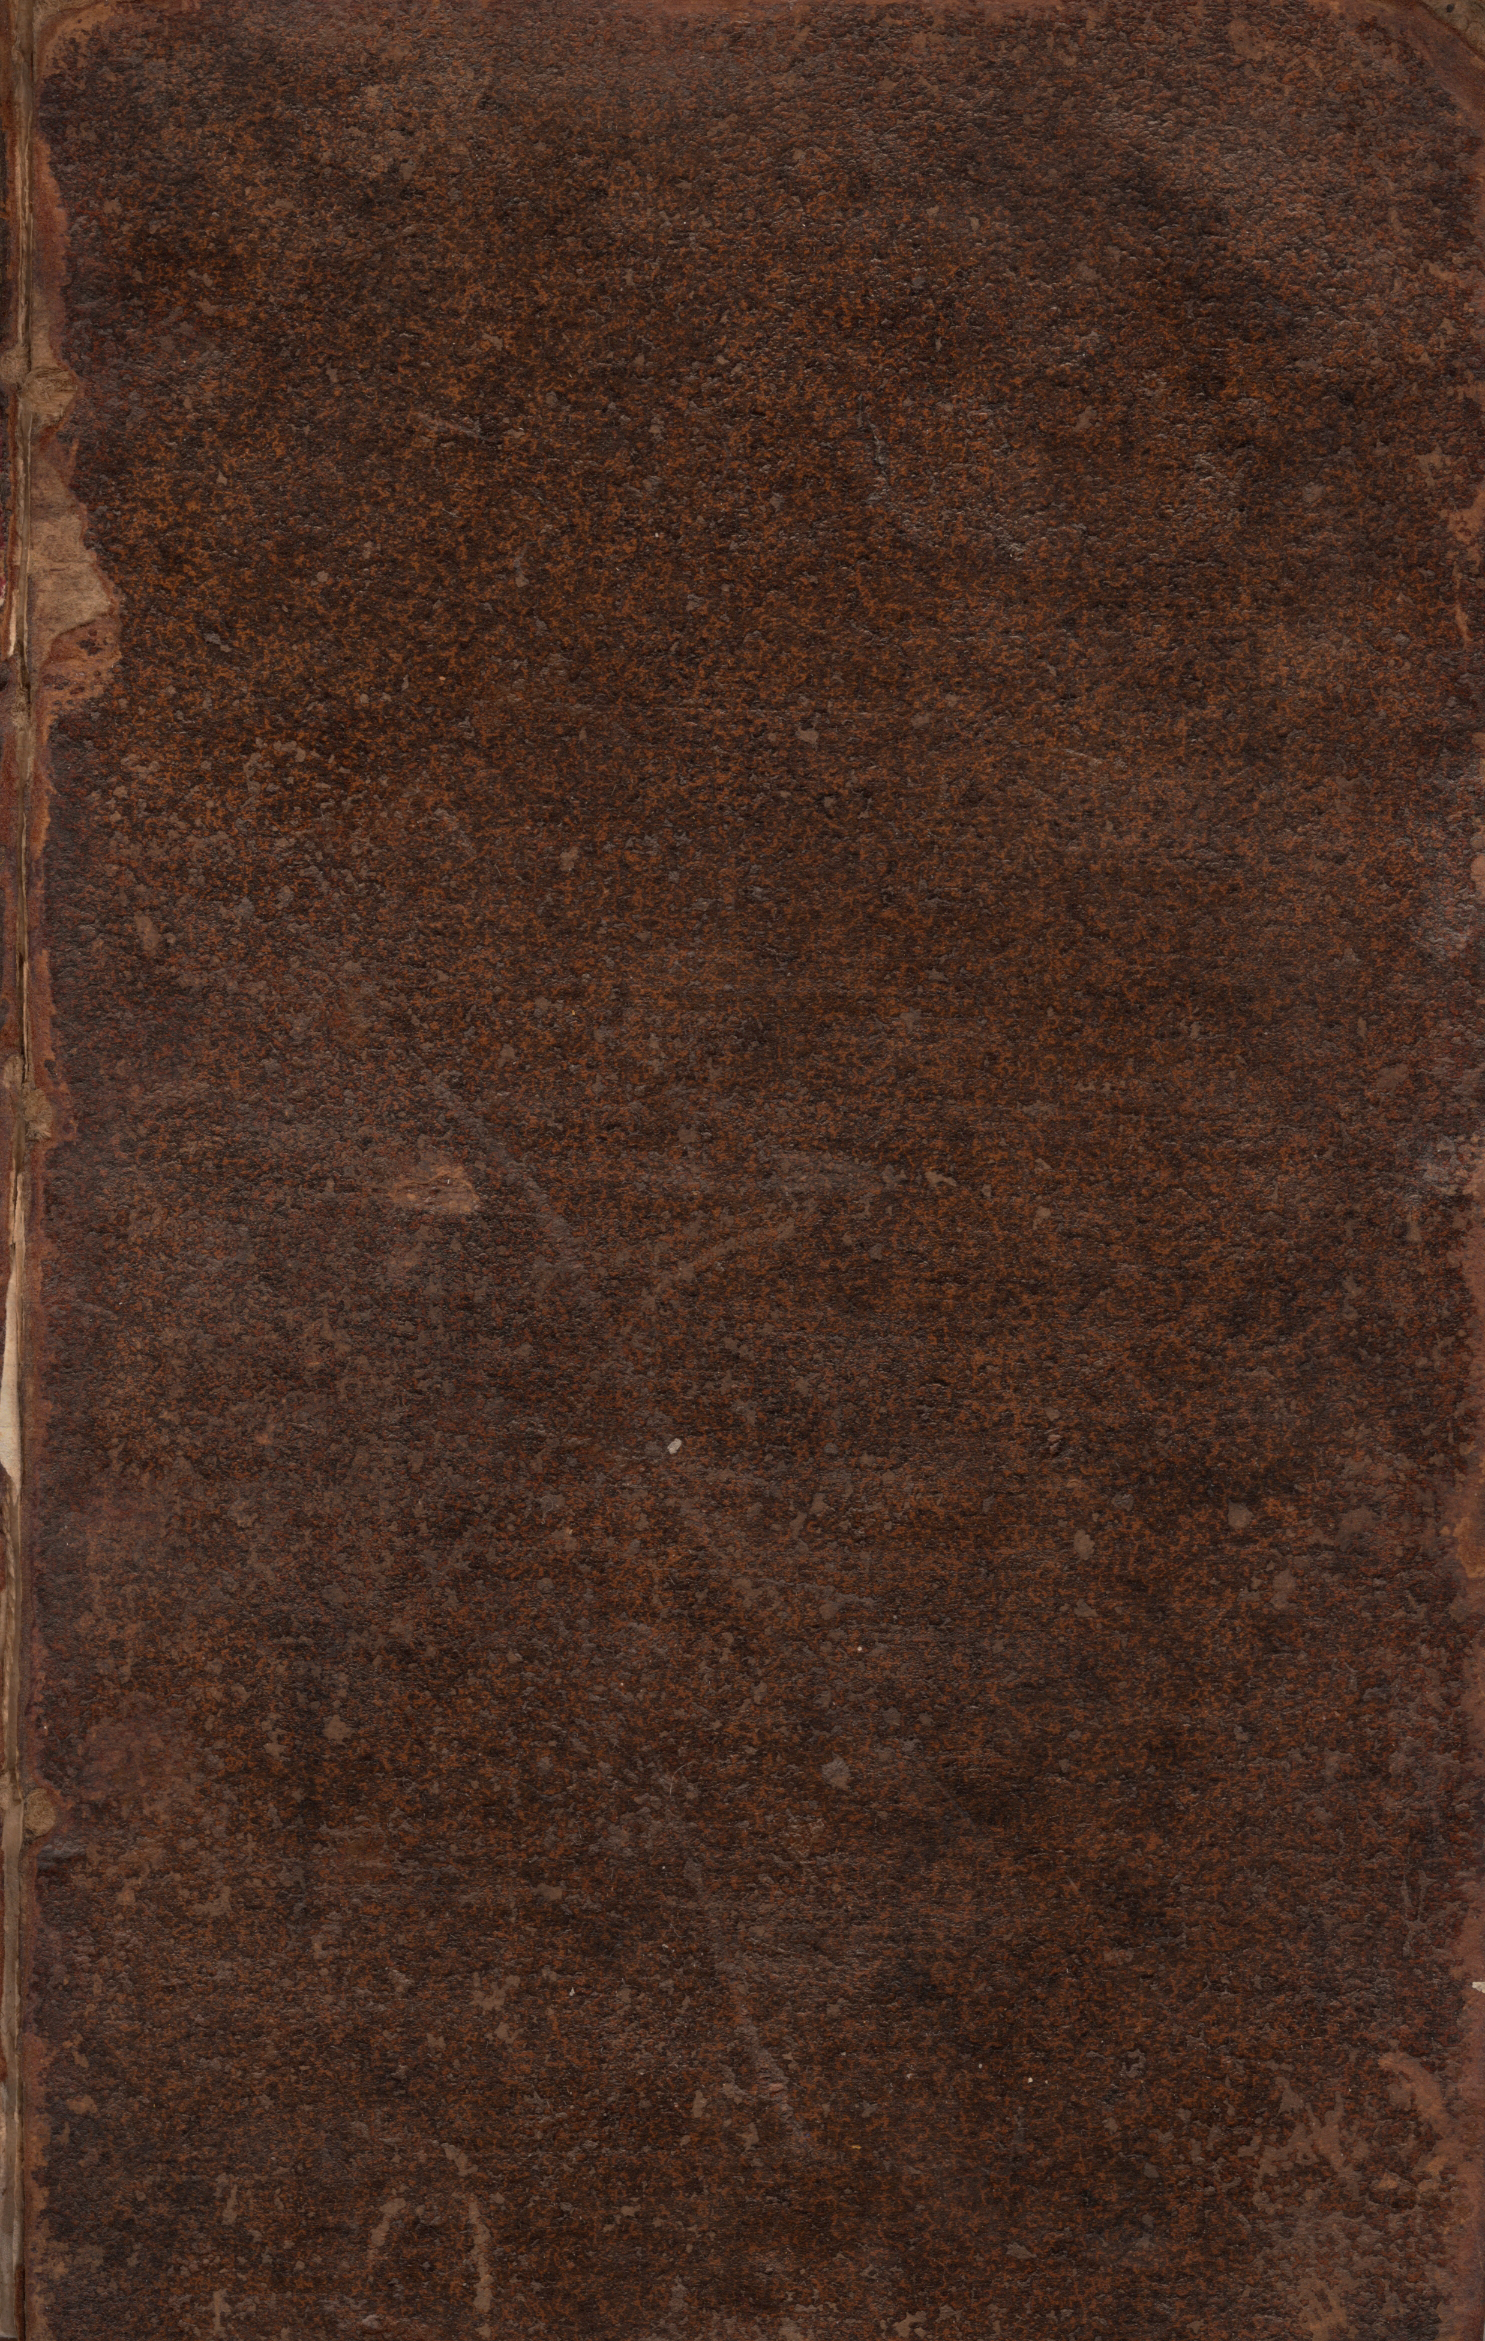 Free Grungy Front Book Cover Texture  LT